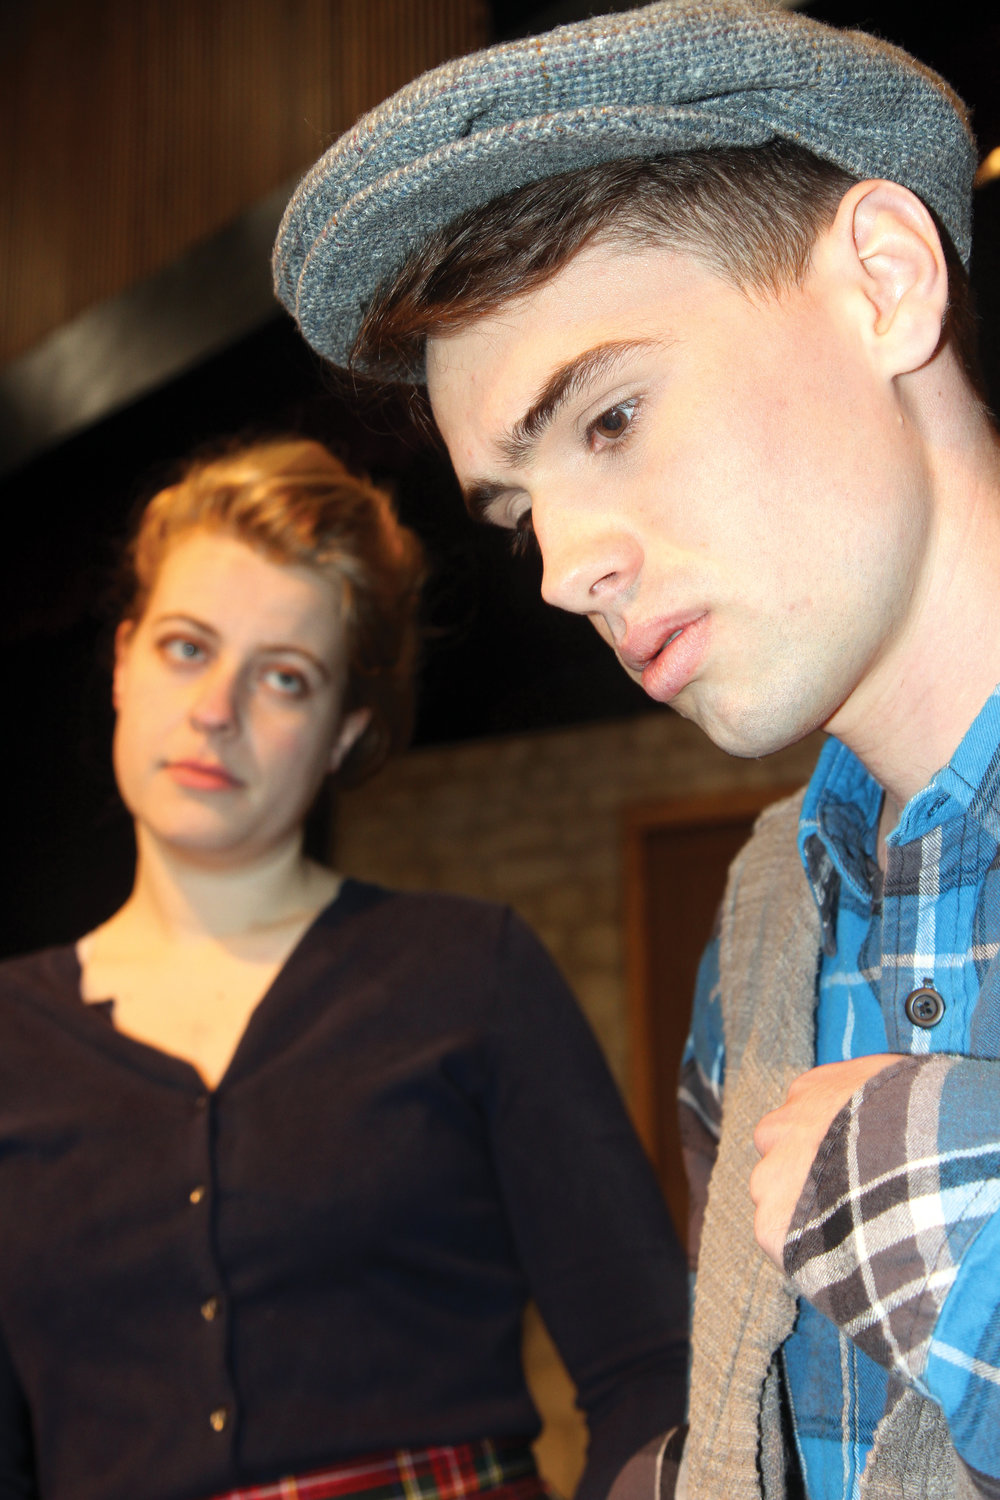 Rose Burt, left, as Helen McCormick, has been sharpening her Irish accent for the debut of the play. At right is Tristan Riley as Billy. Leader photo by Chris McDaniel.